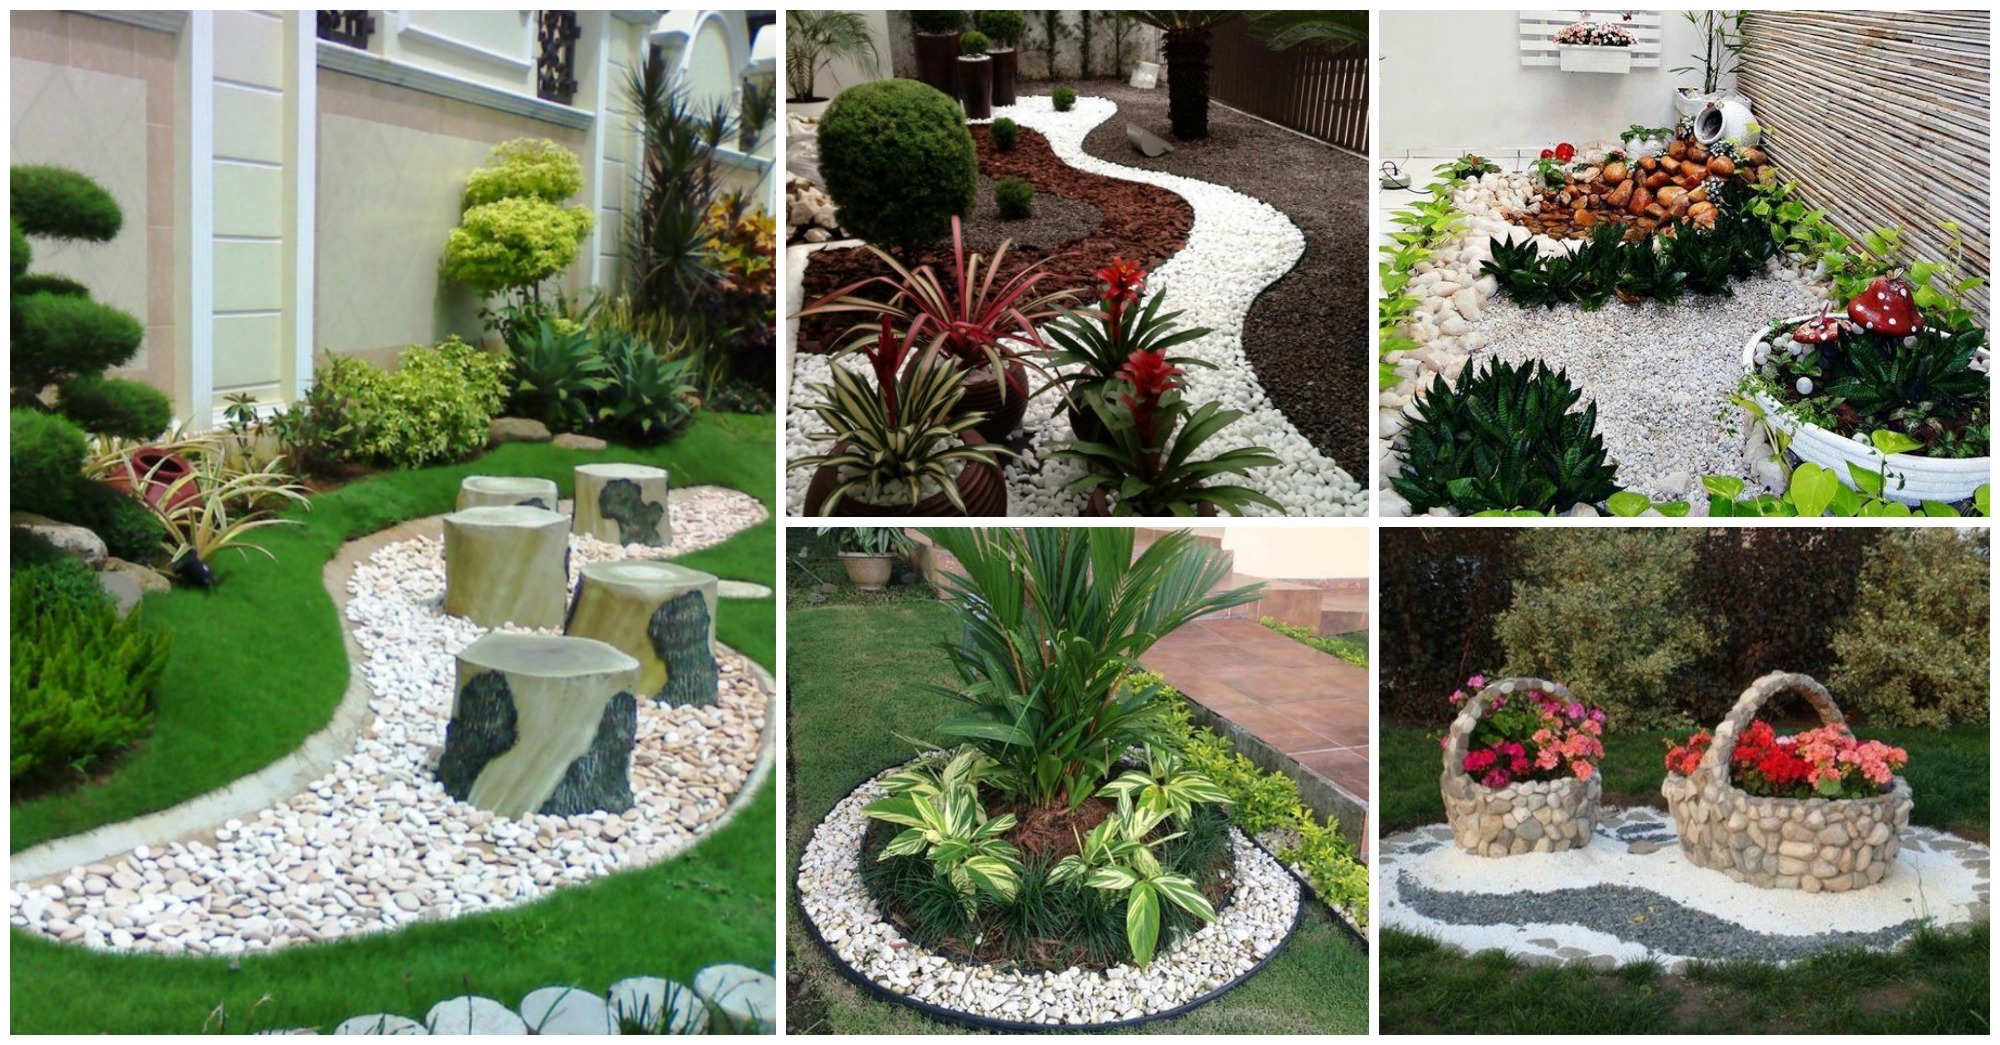 12 fant sticas ideas para dise ar un jard n con piedras for Ideas para decorar un jardin rustico